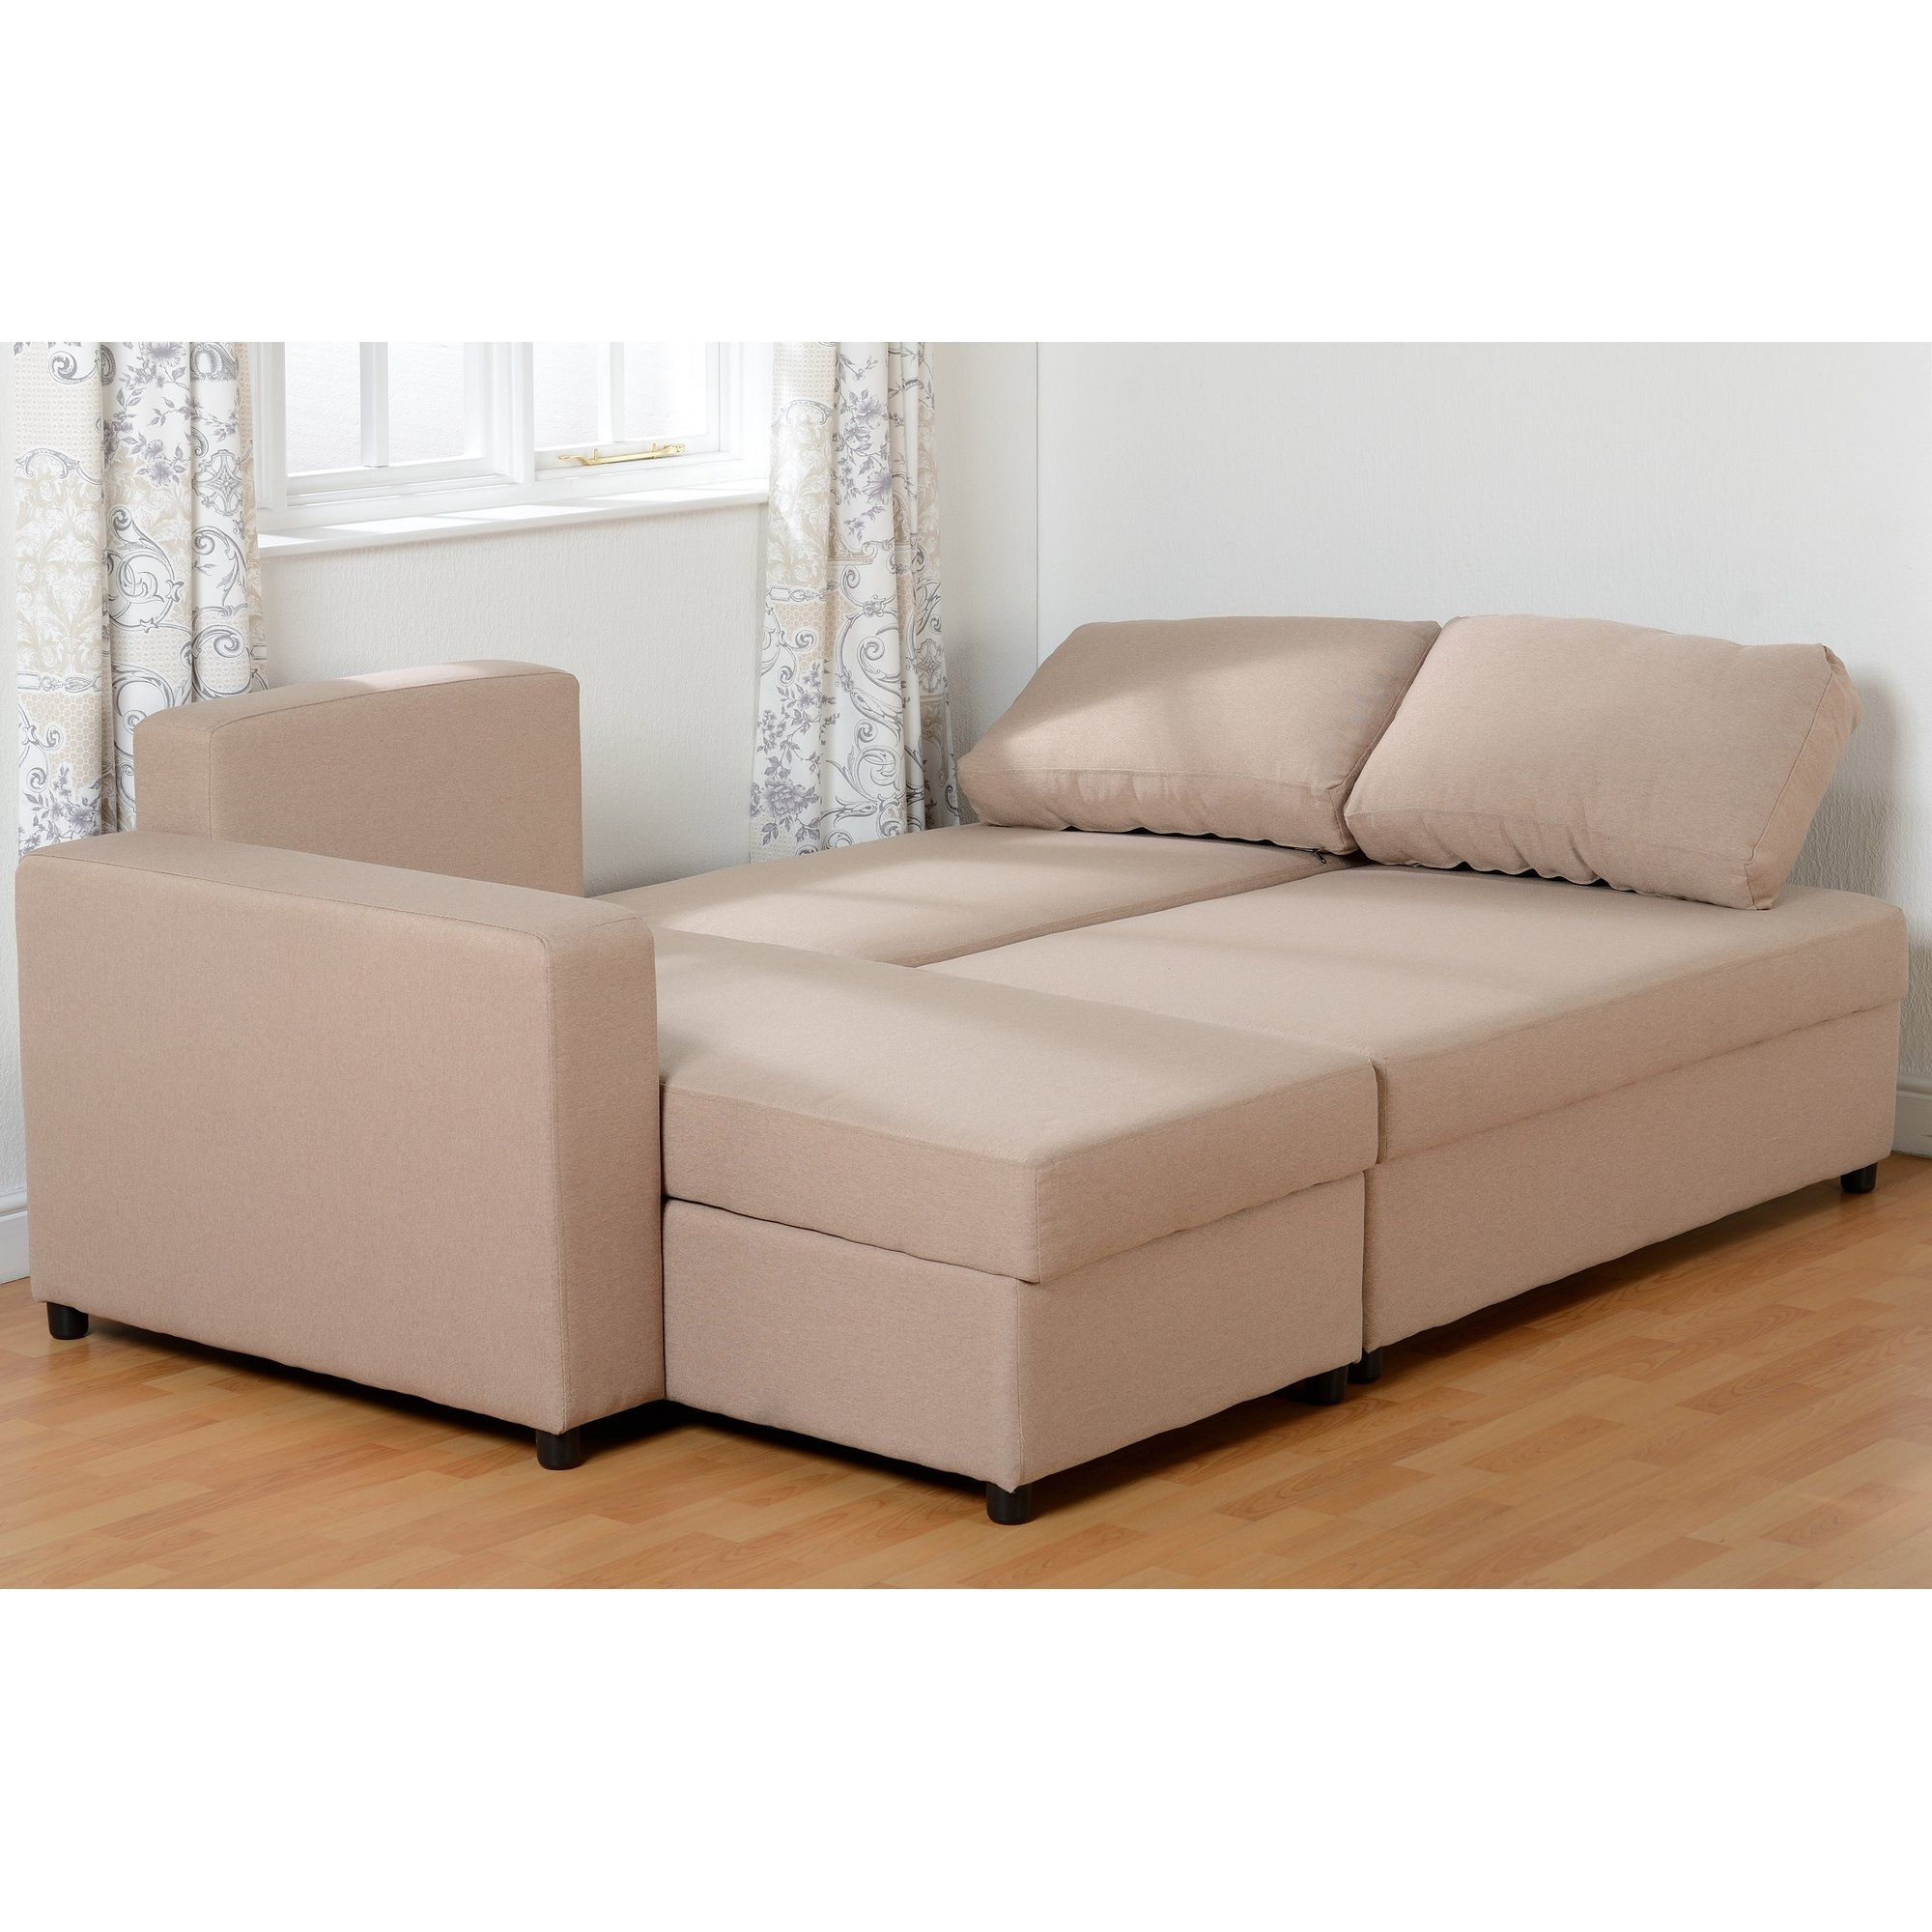 Trendy 2Pc Maddox Left Arm Facing Sectional Sofas With Cuddler Brown For Corner Sofa Sleeper – Wood Chair (View 6 of 20)